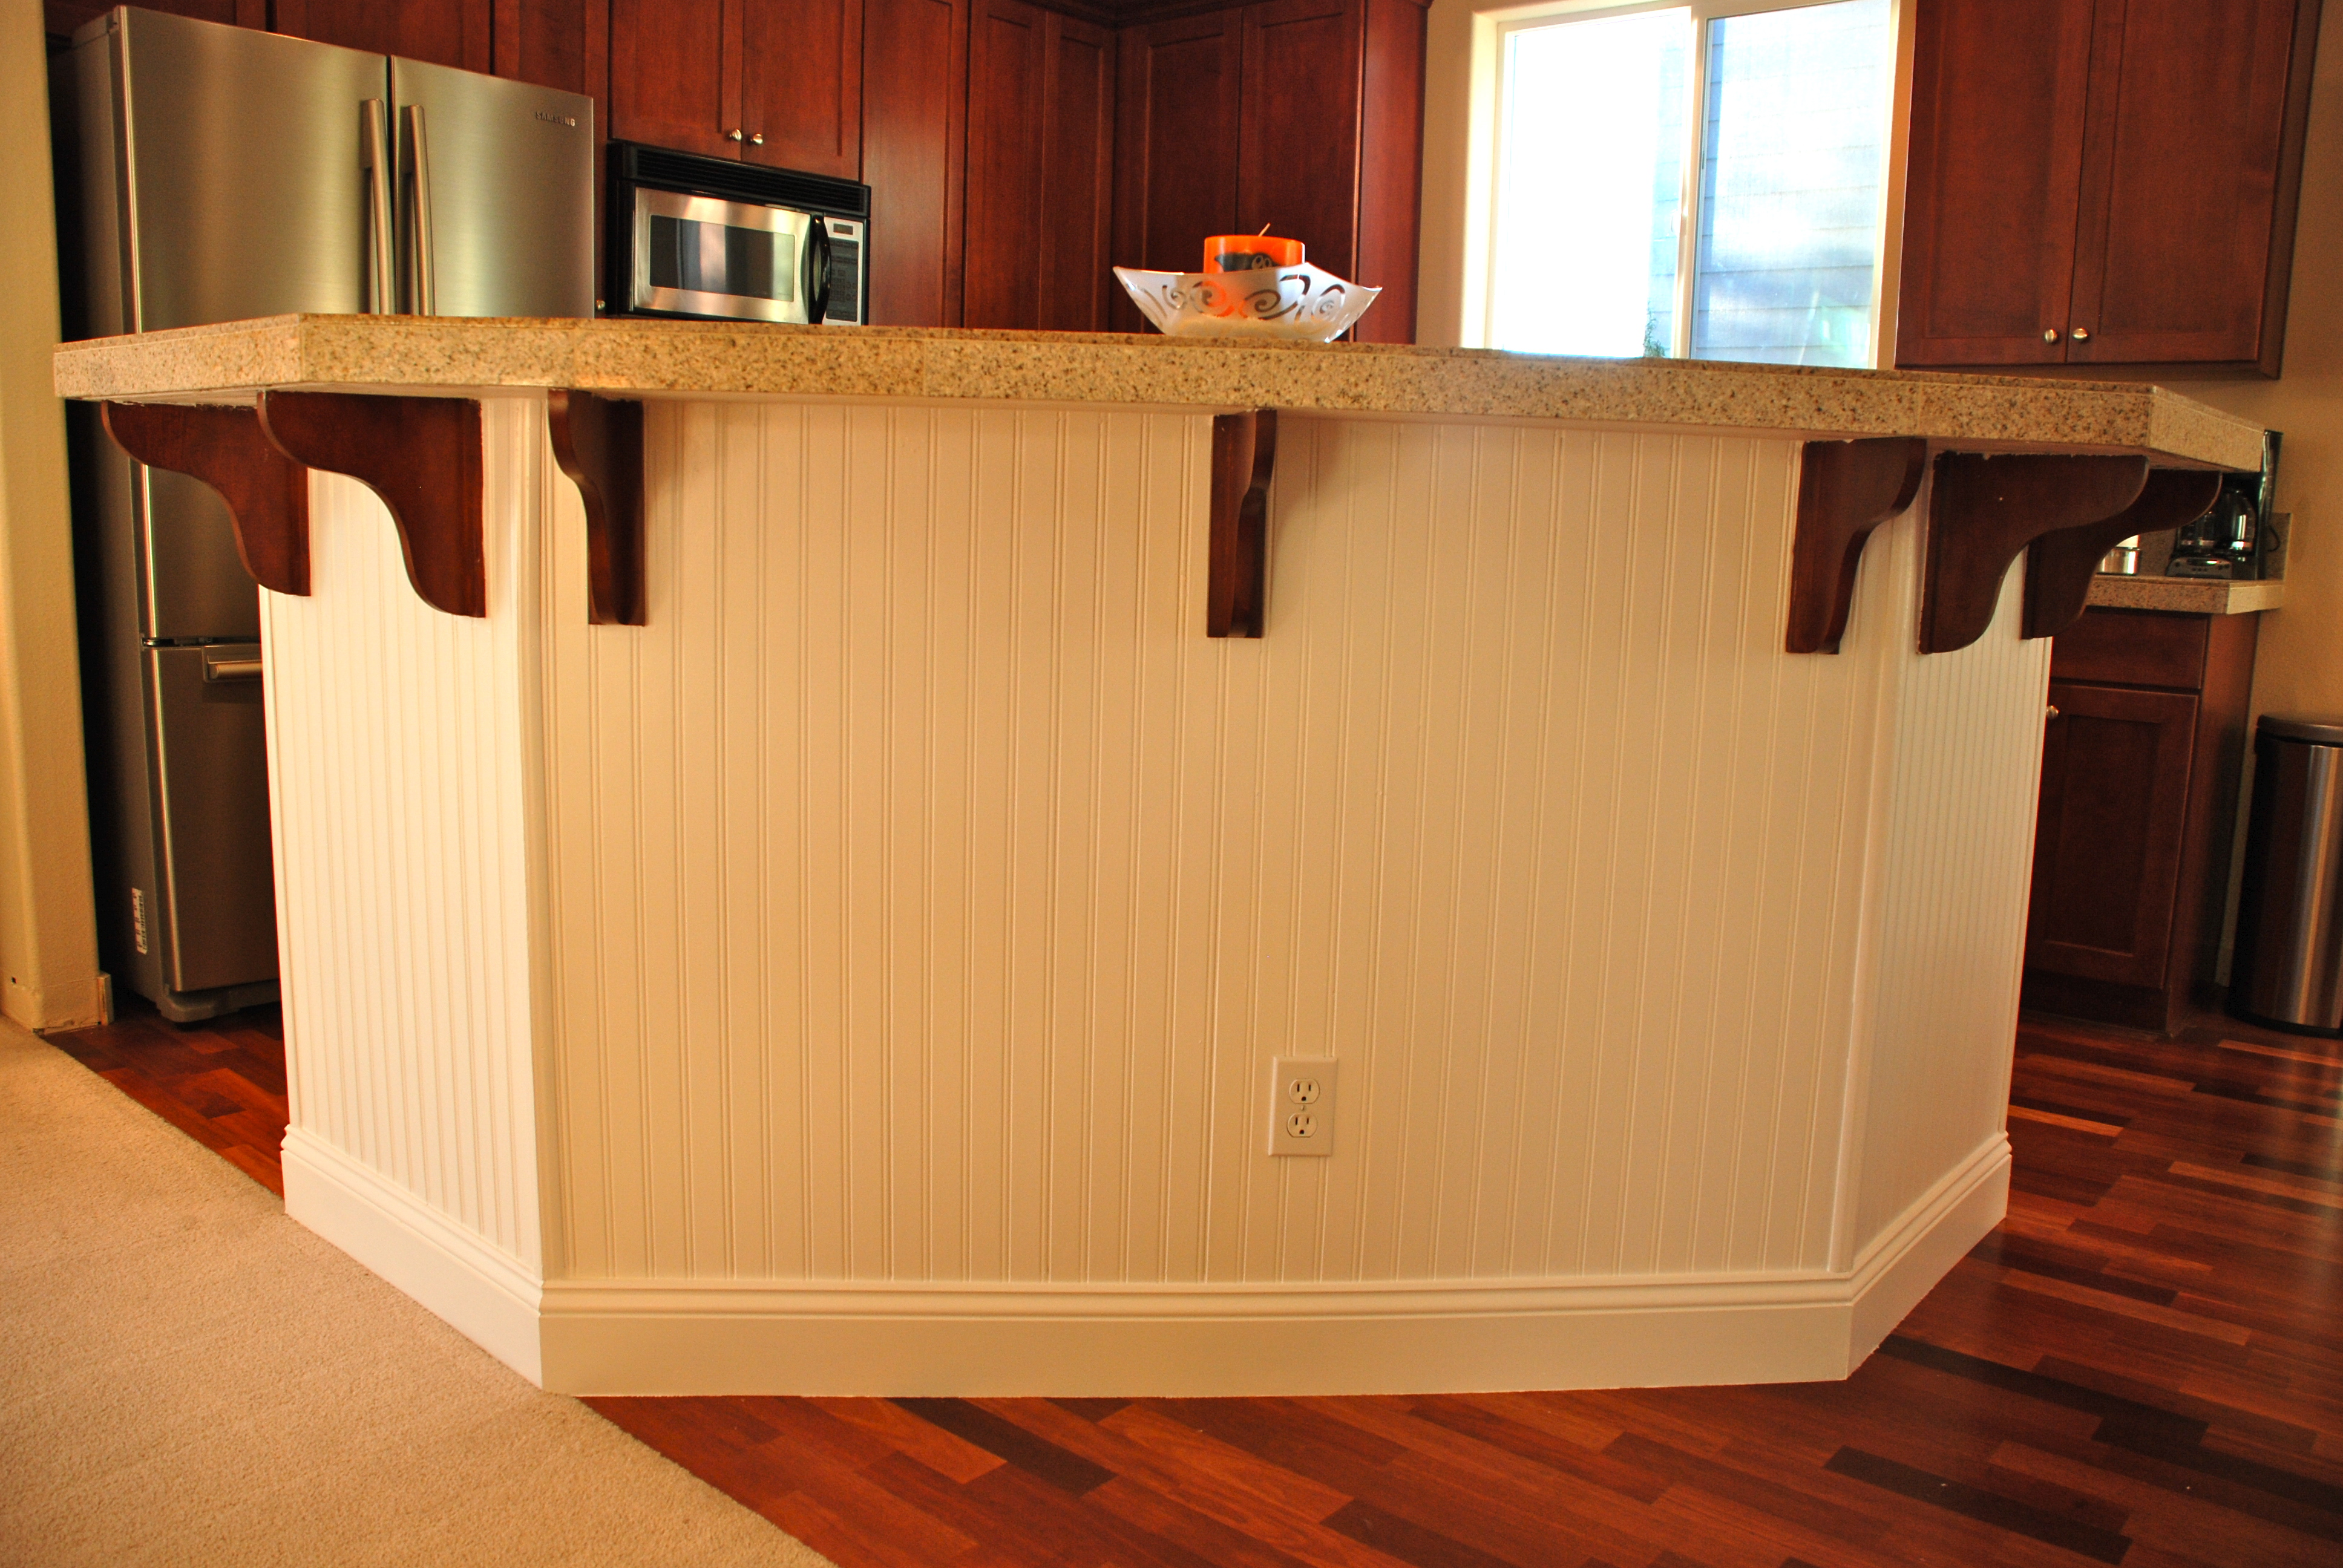 beadboard kitchen island runner rugs for bar best house interior today and ztil news rh blogspot com